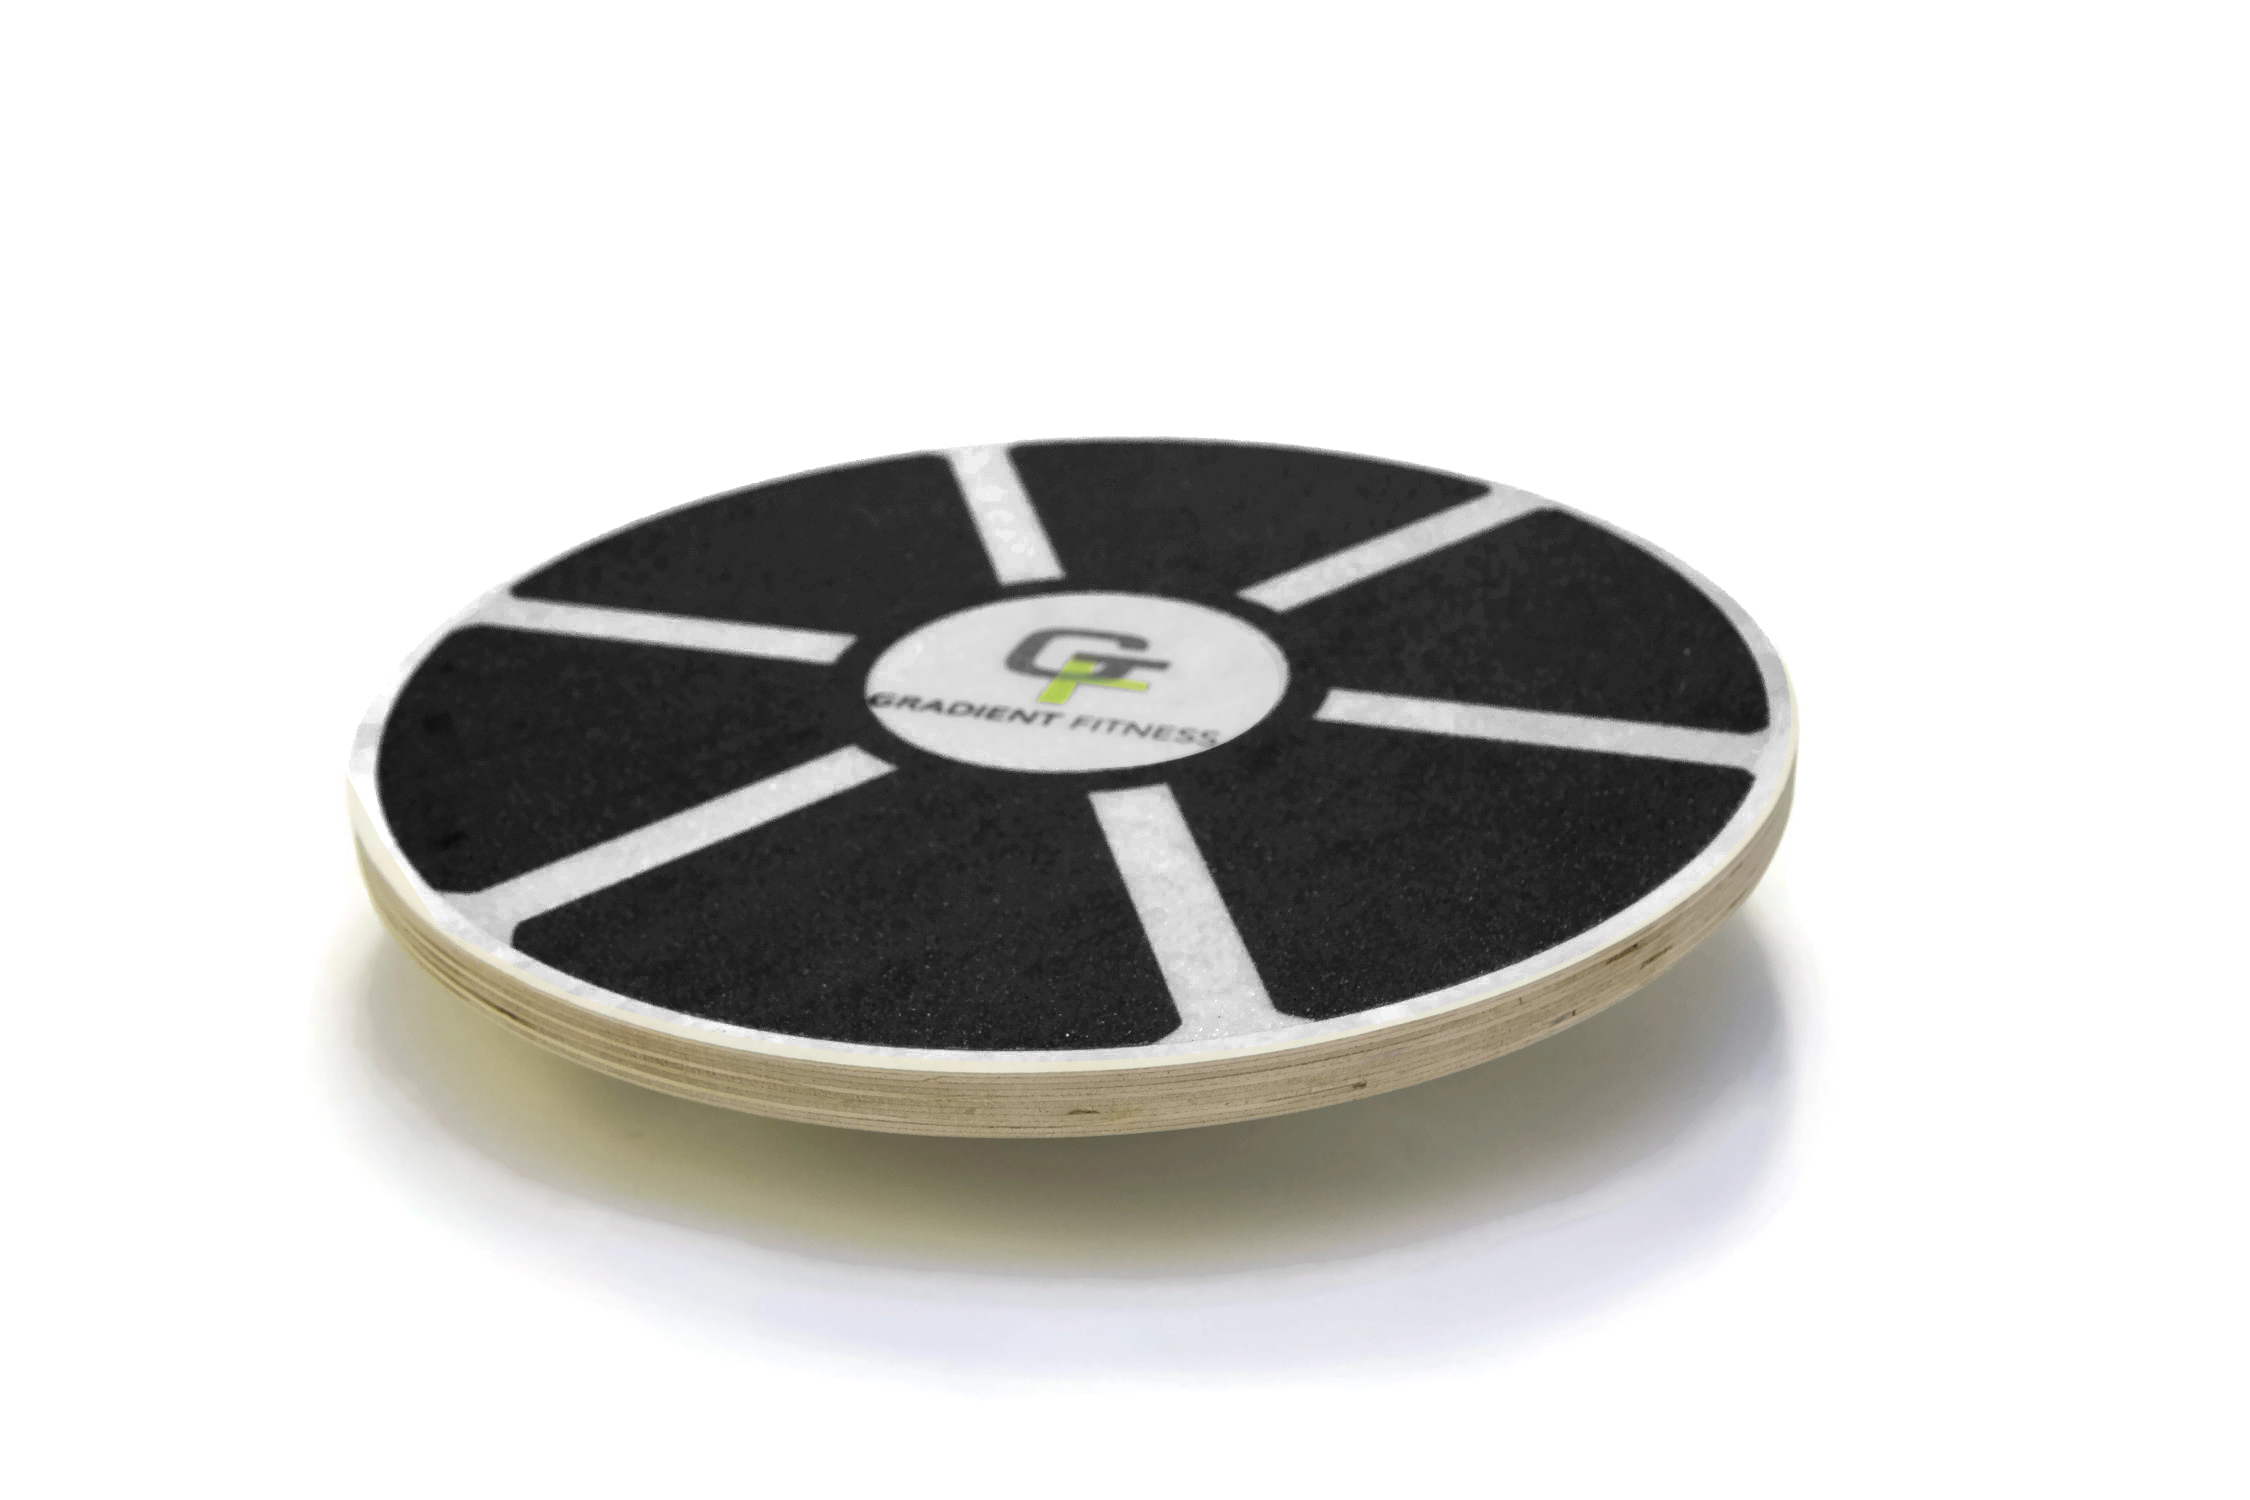 GF Balance Board, Wooden Wobble Board, Circular Non-slip Physical Therapy Exercise Tool by Gradient Fitness